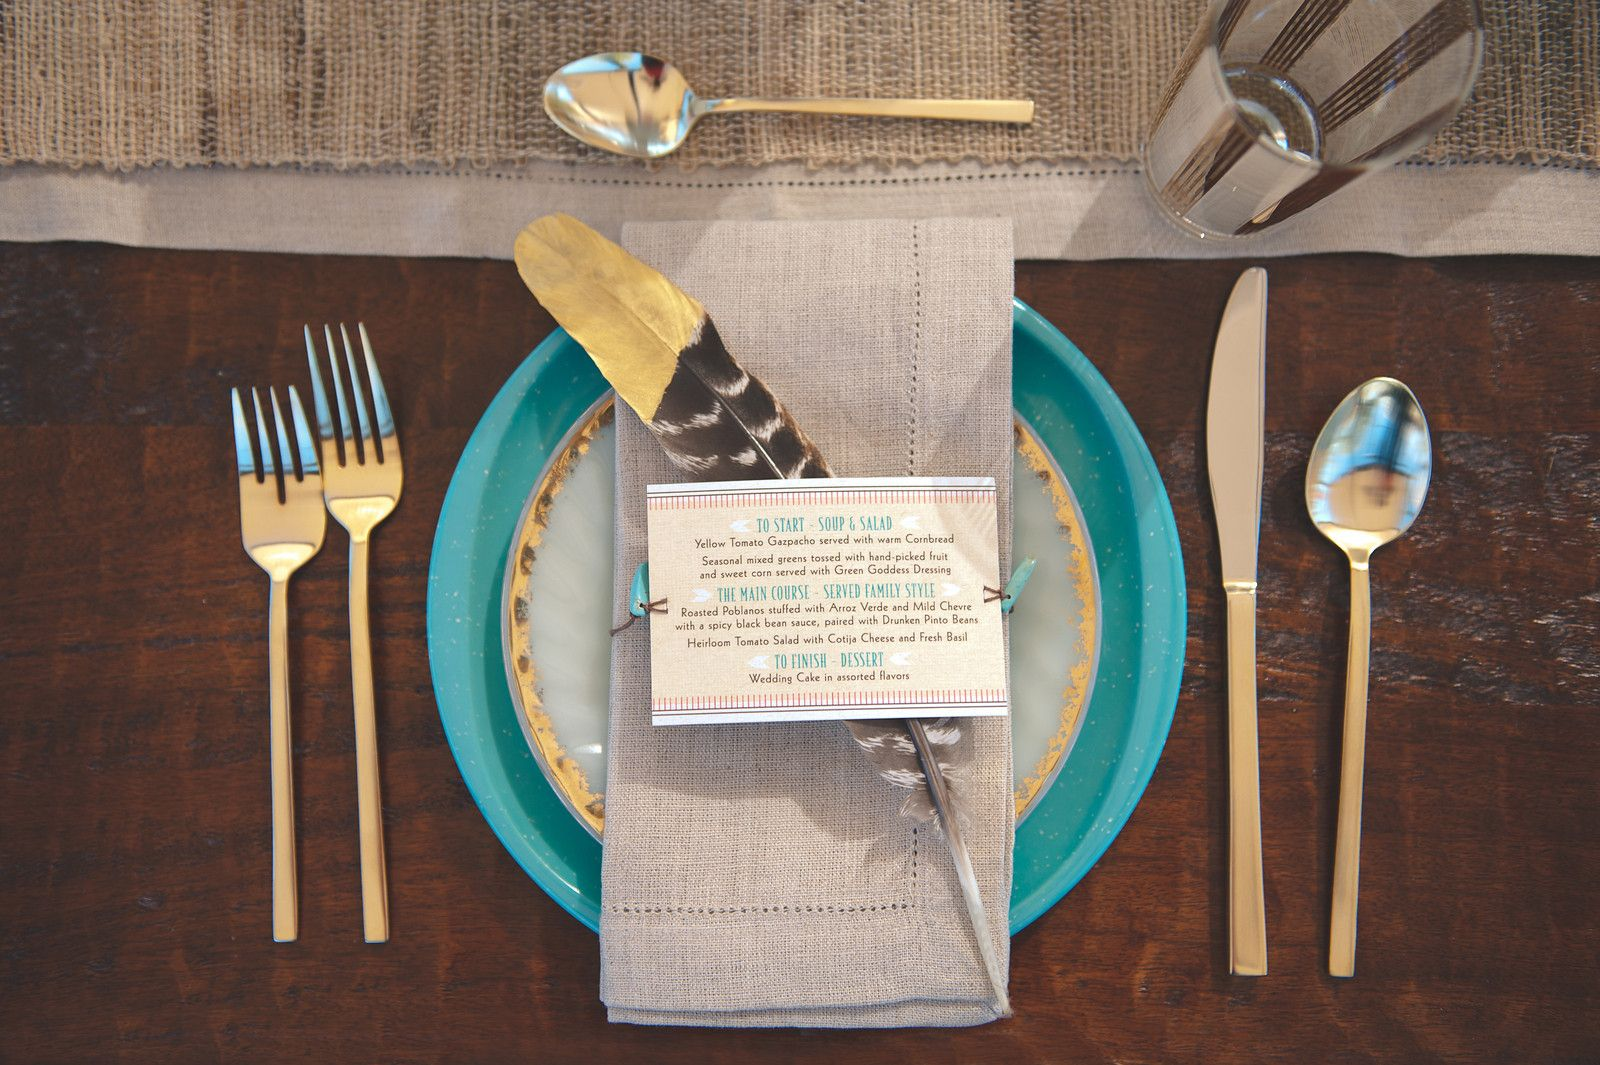 I like the dipped feather and hemstitch napkin the skinny flatware